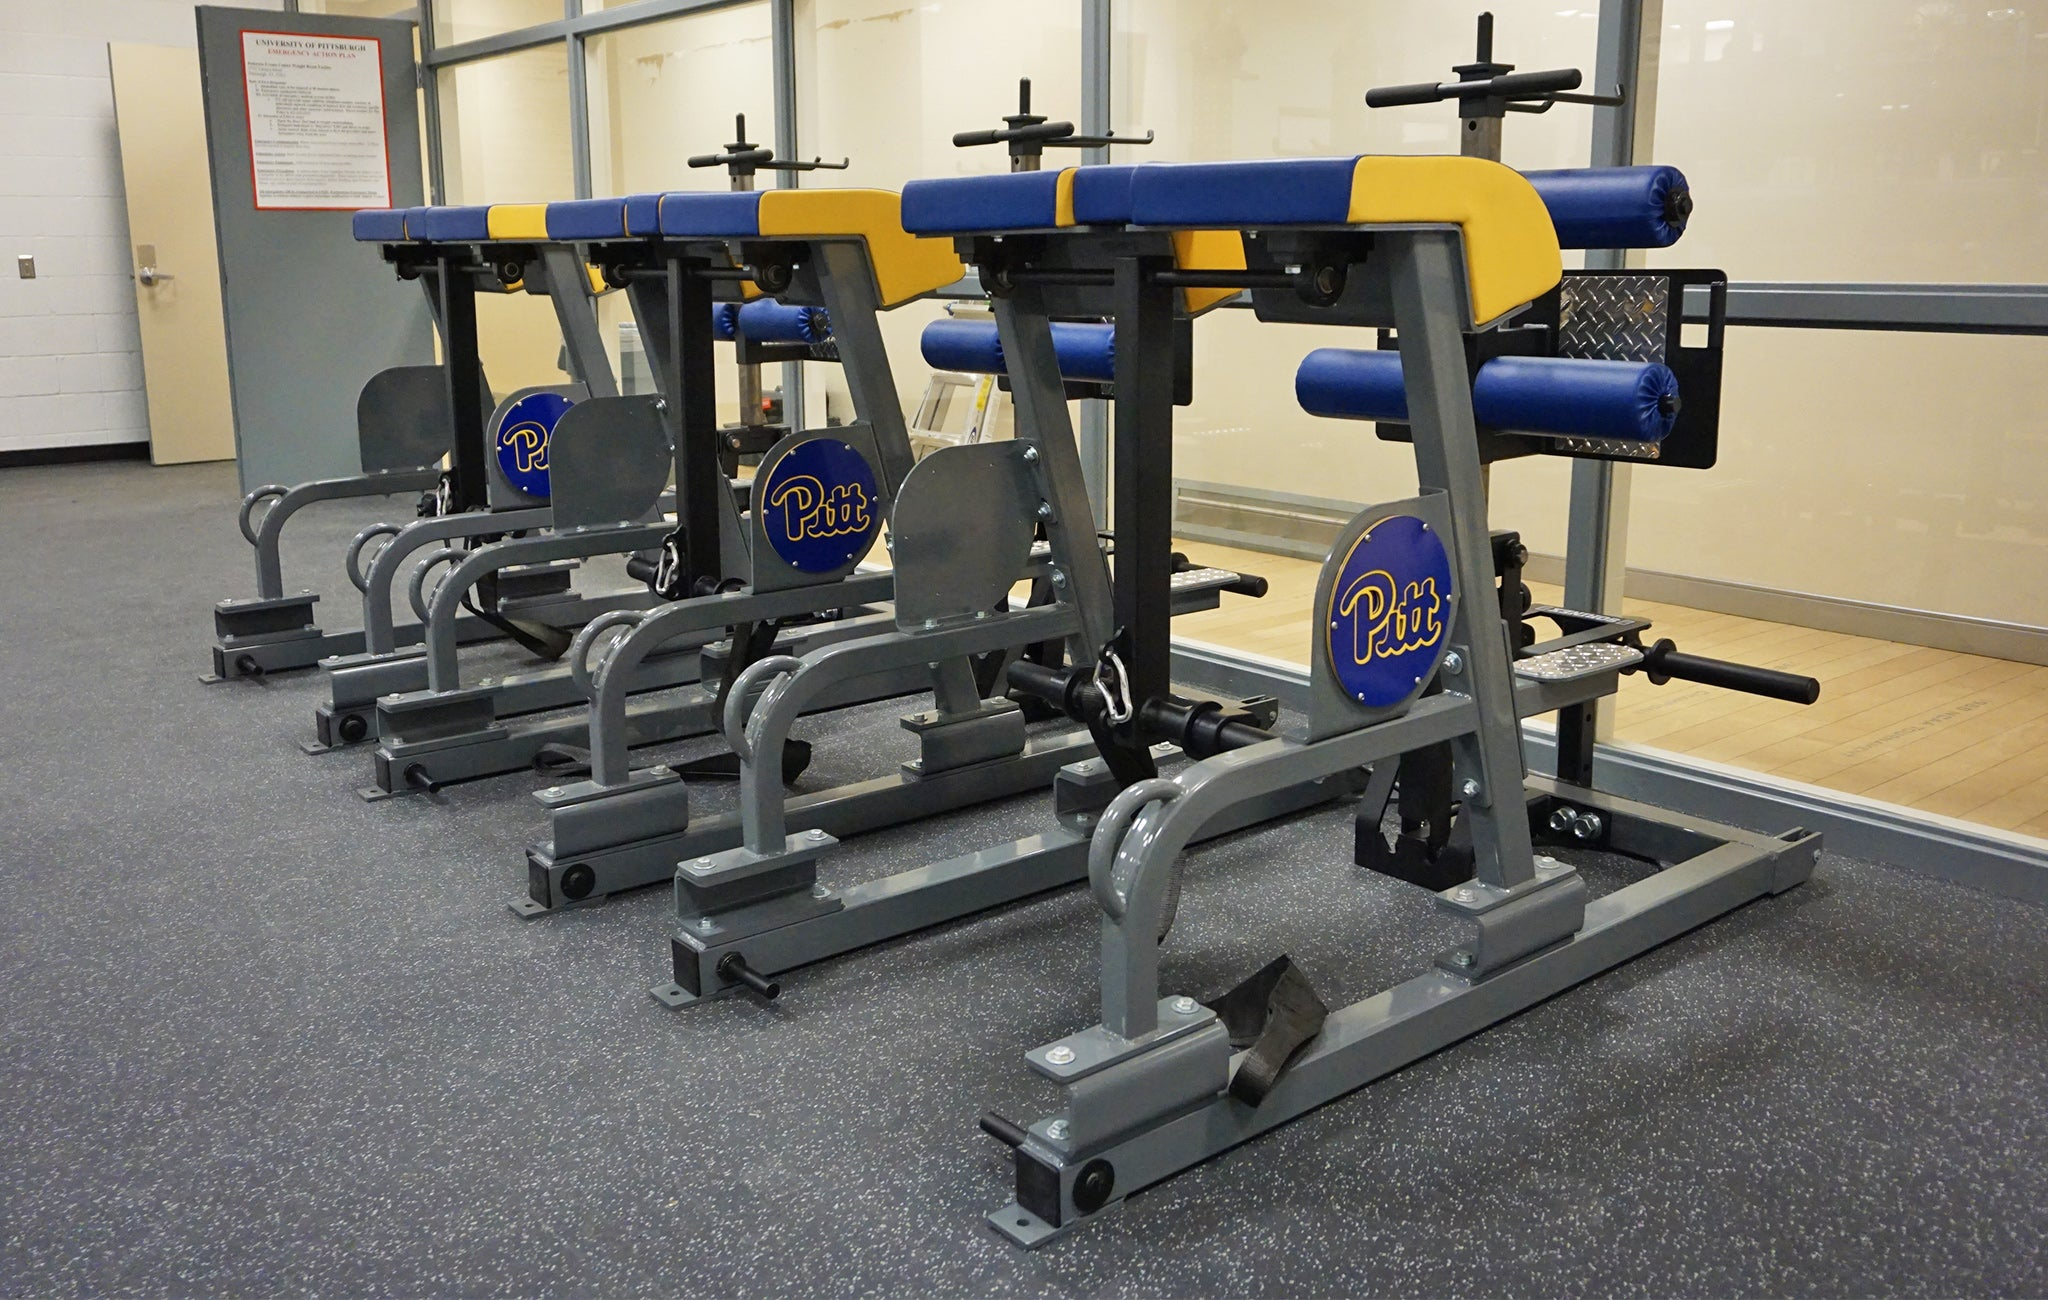 University of Pittsburgh strength and conditioning